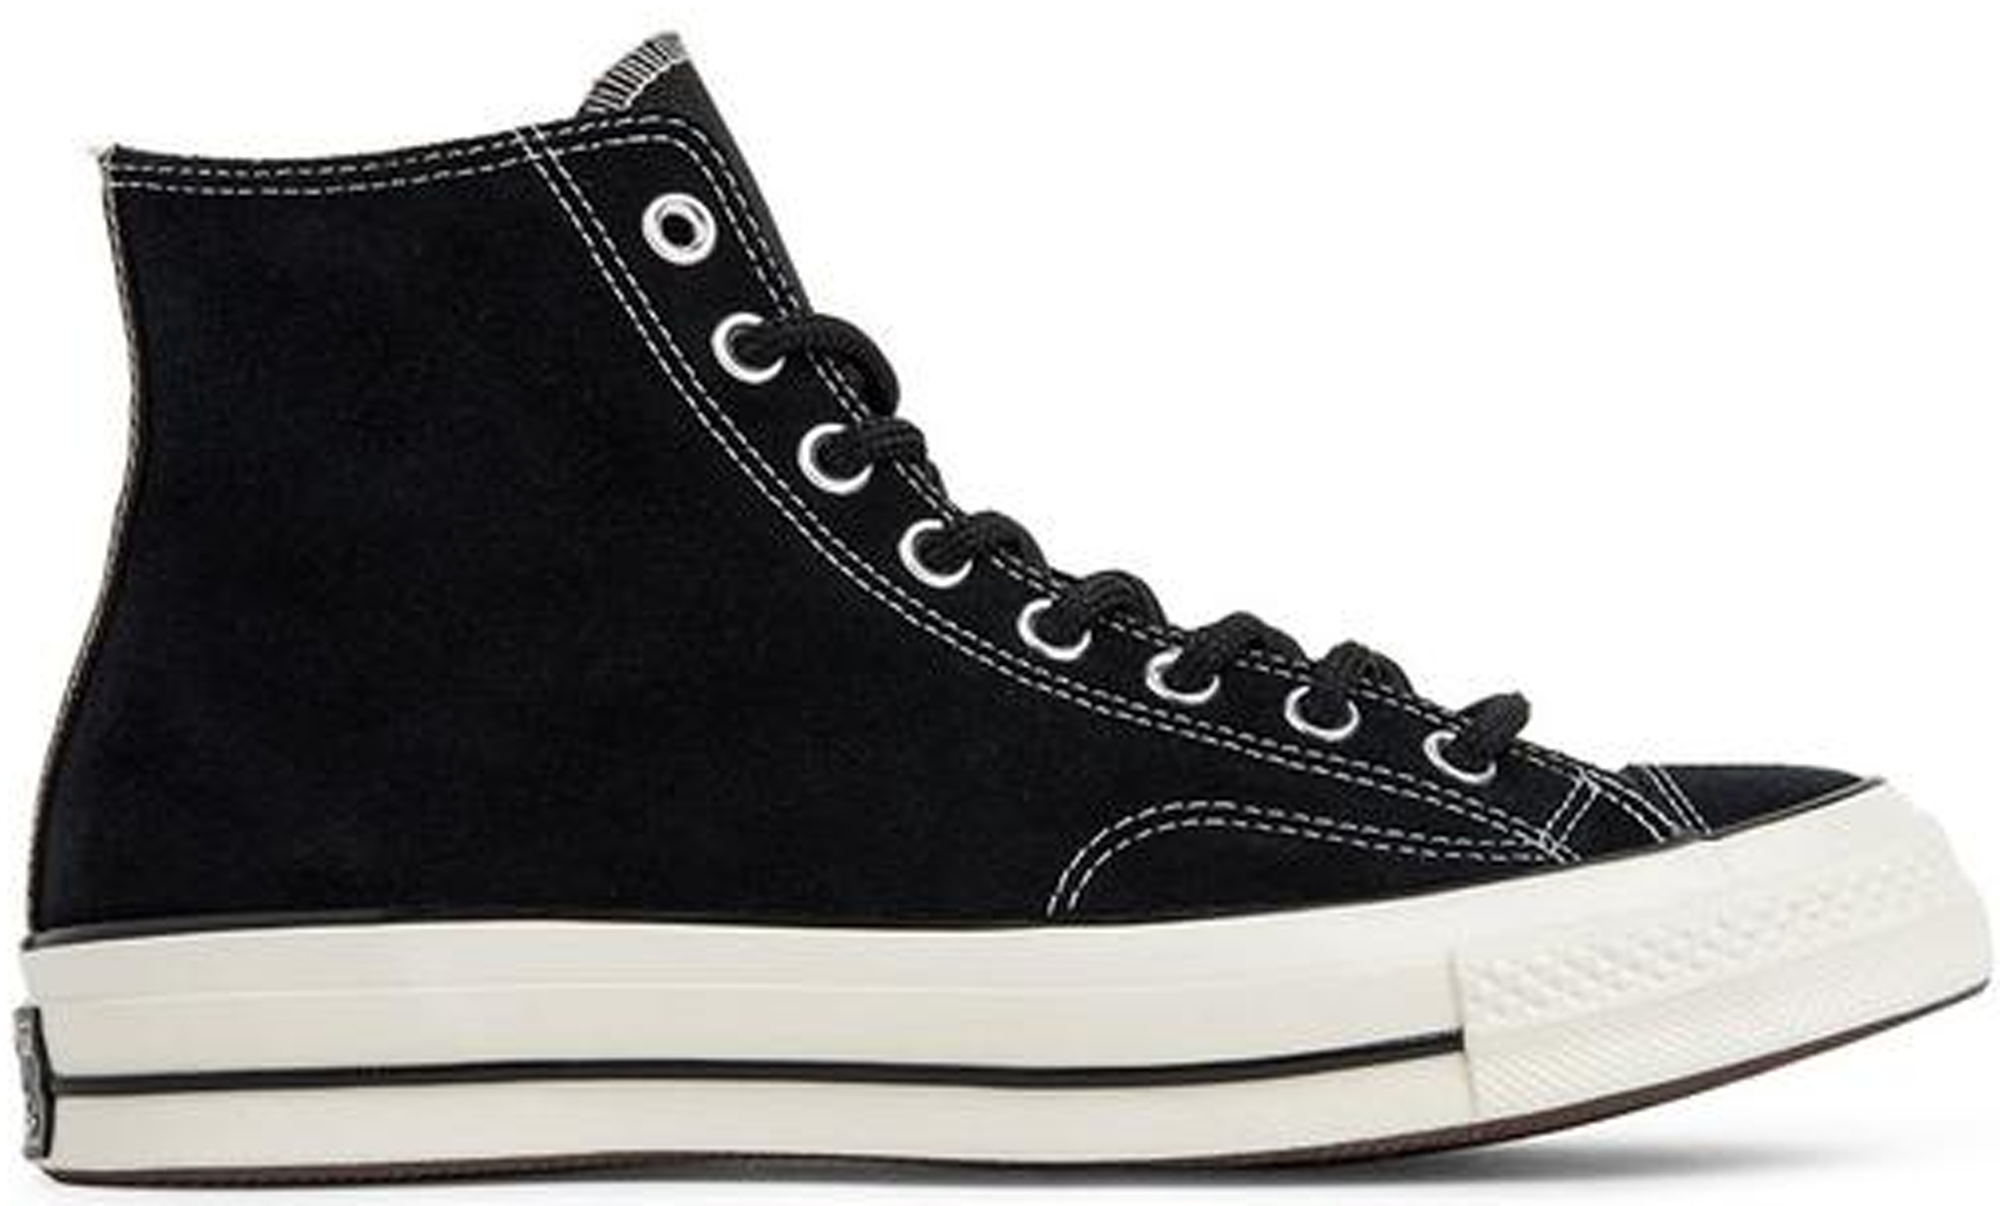 Converse Chuck Taylor All-Star 70s Hi Suede Pack Black